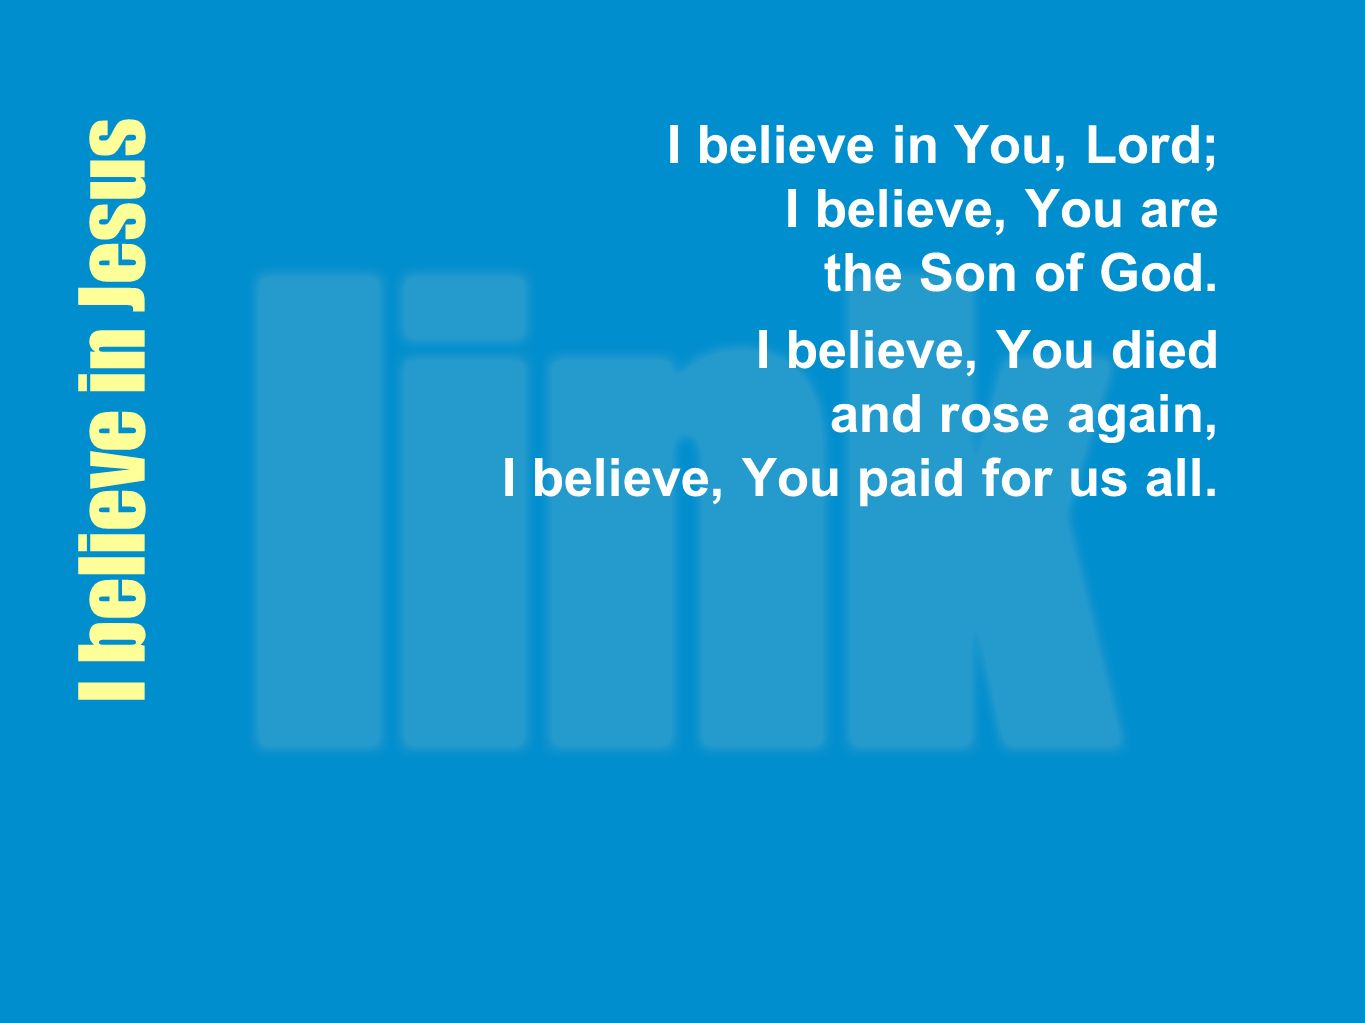 I believe in Jesus I believe in You, Lord; I believe, You are the Son of God.